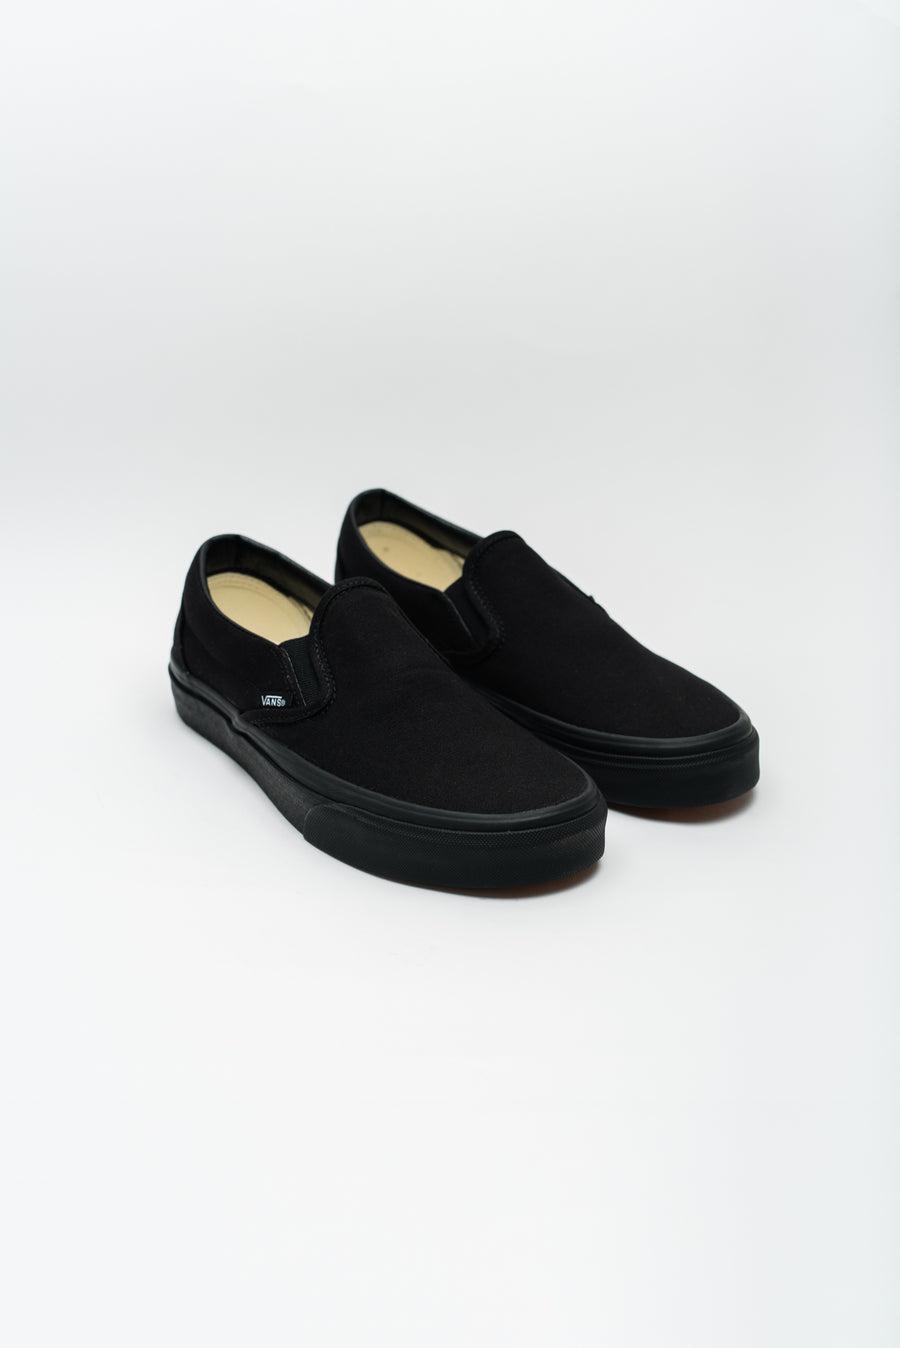 Men's Slip-On - Black